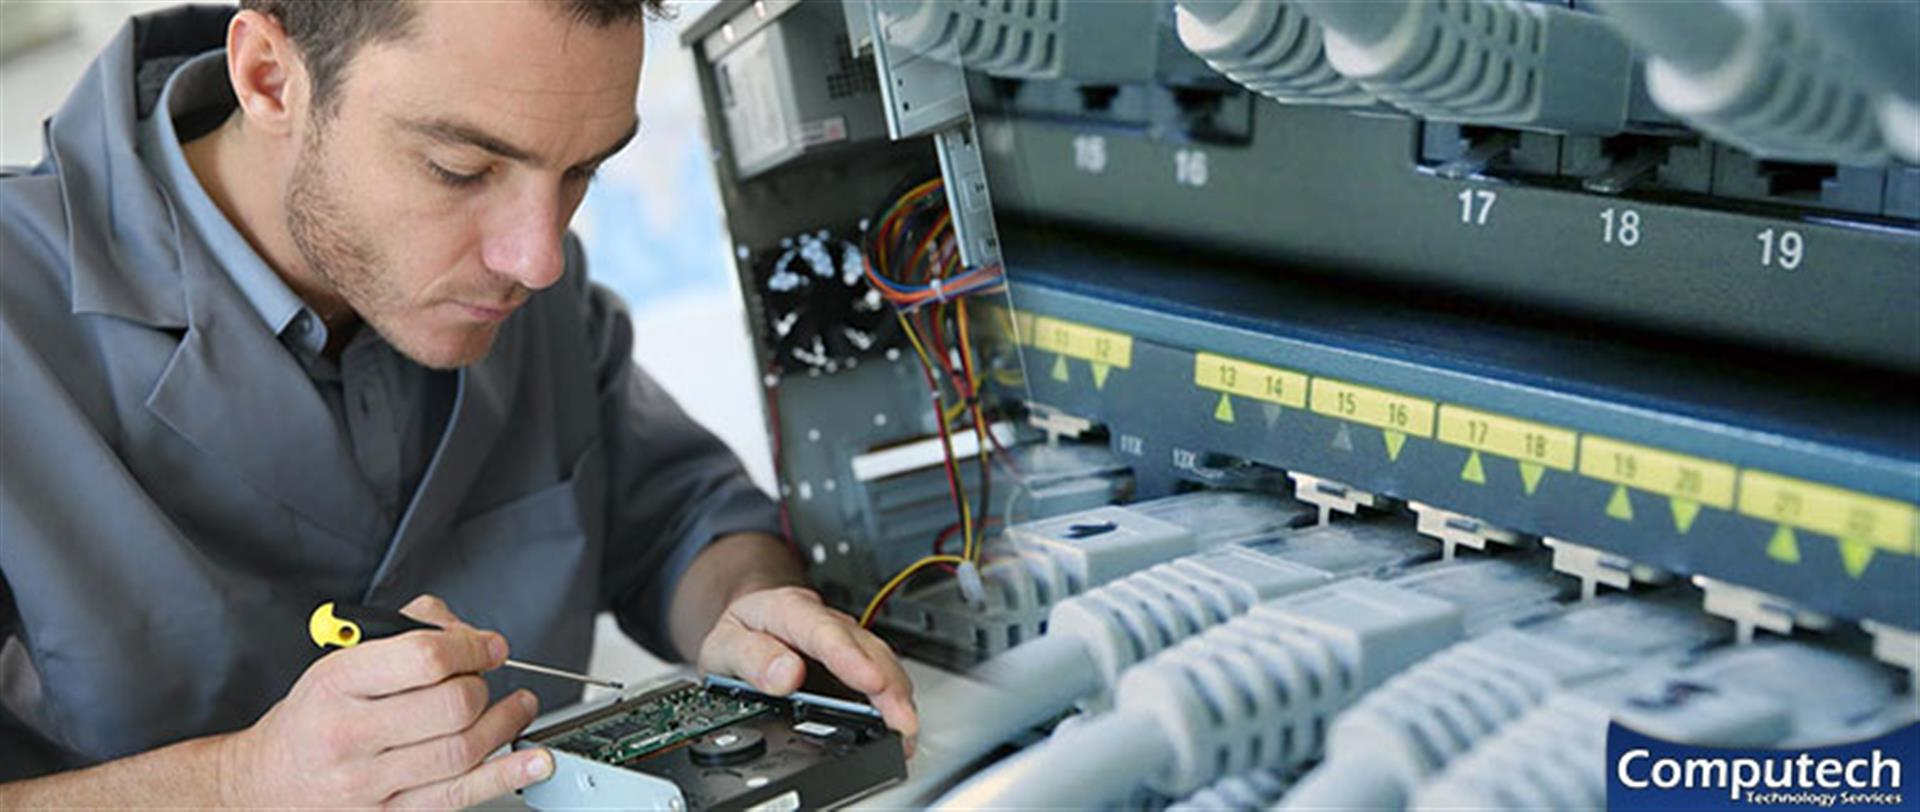 Mount Pleasant Tennessee On Site Computer and Printer Repairs, Networking, Voice & Data Cabling Services